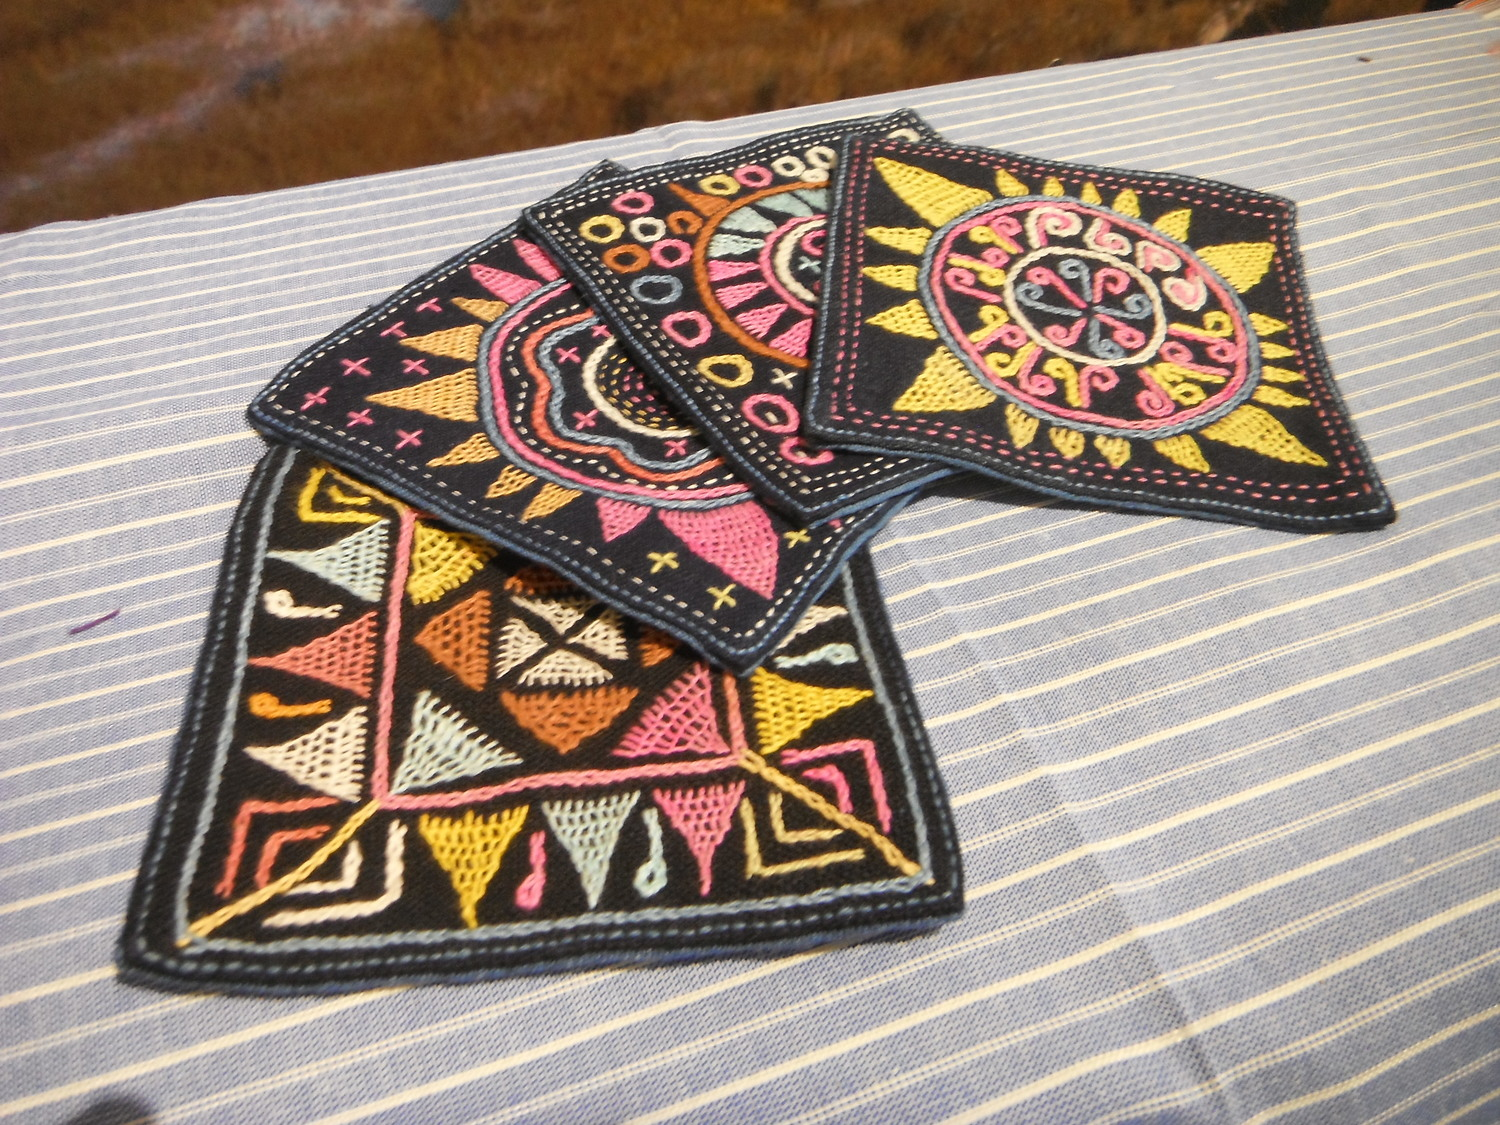 Lauren Laos Coaster Sets